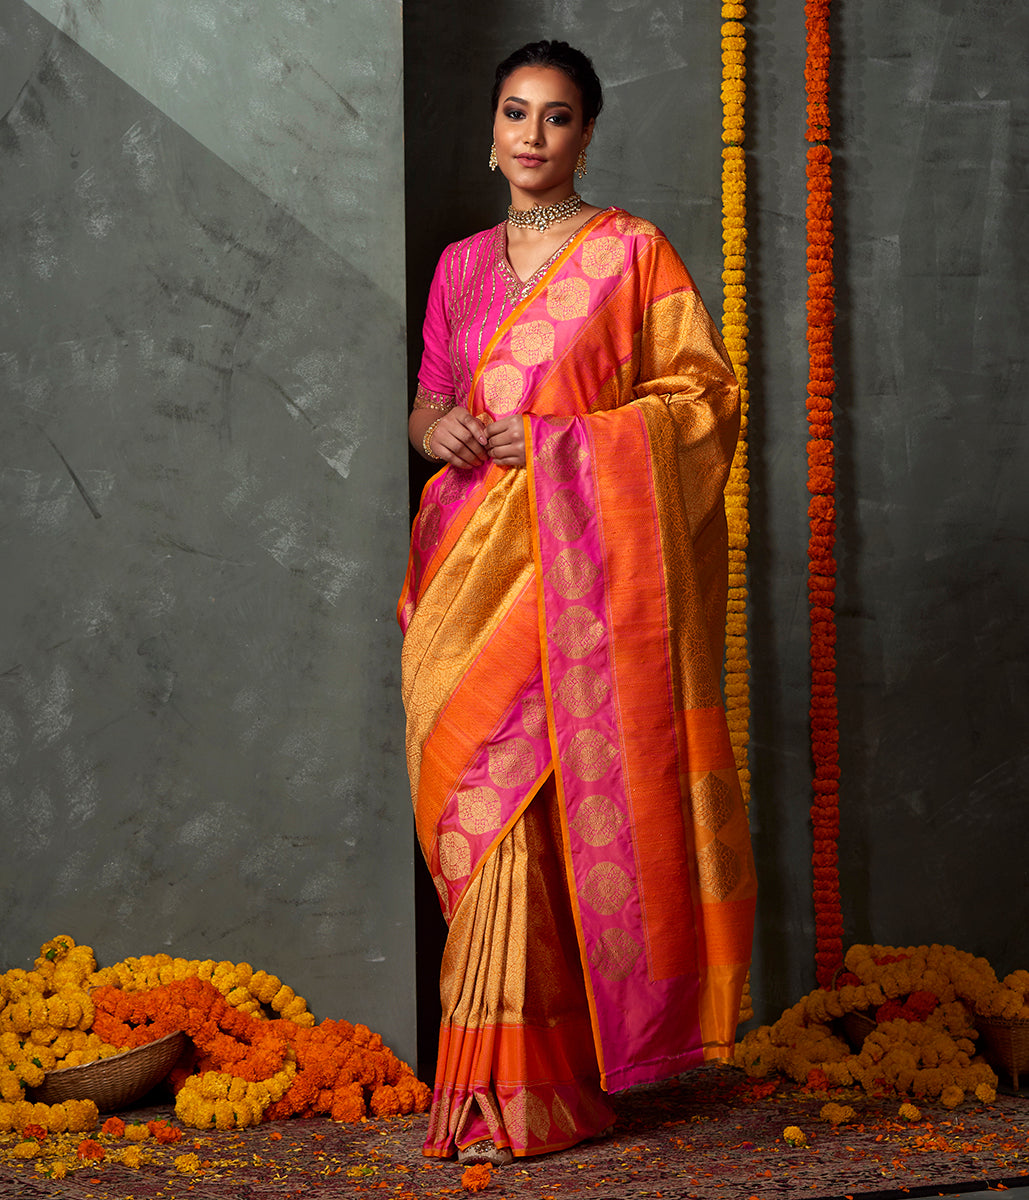 Handwoven Banarasi Kimkhab Saree in Mustard with and Orange and Pink Twill Weave Border